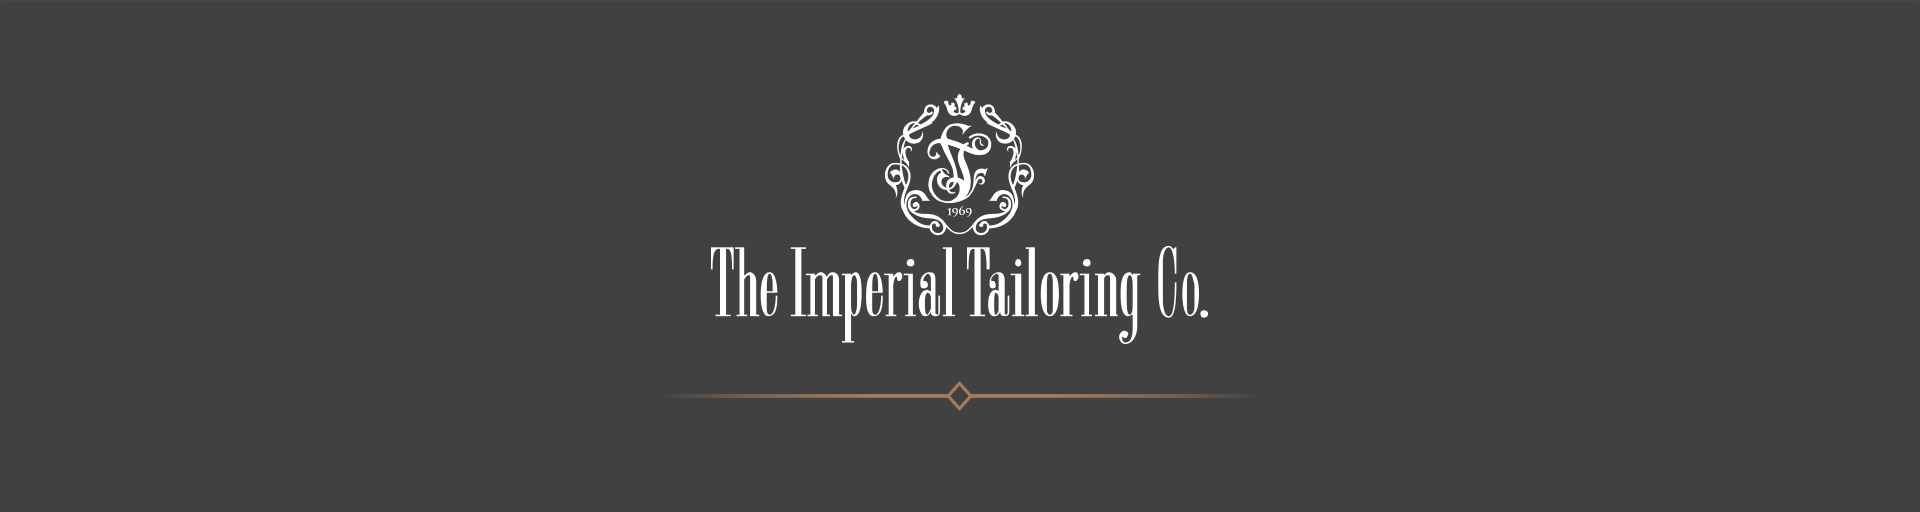 Логотип компании The Imperial Tailoring Co